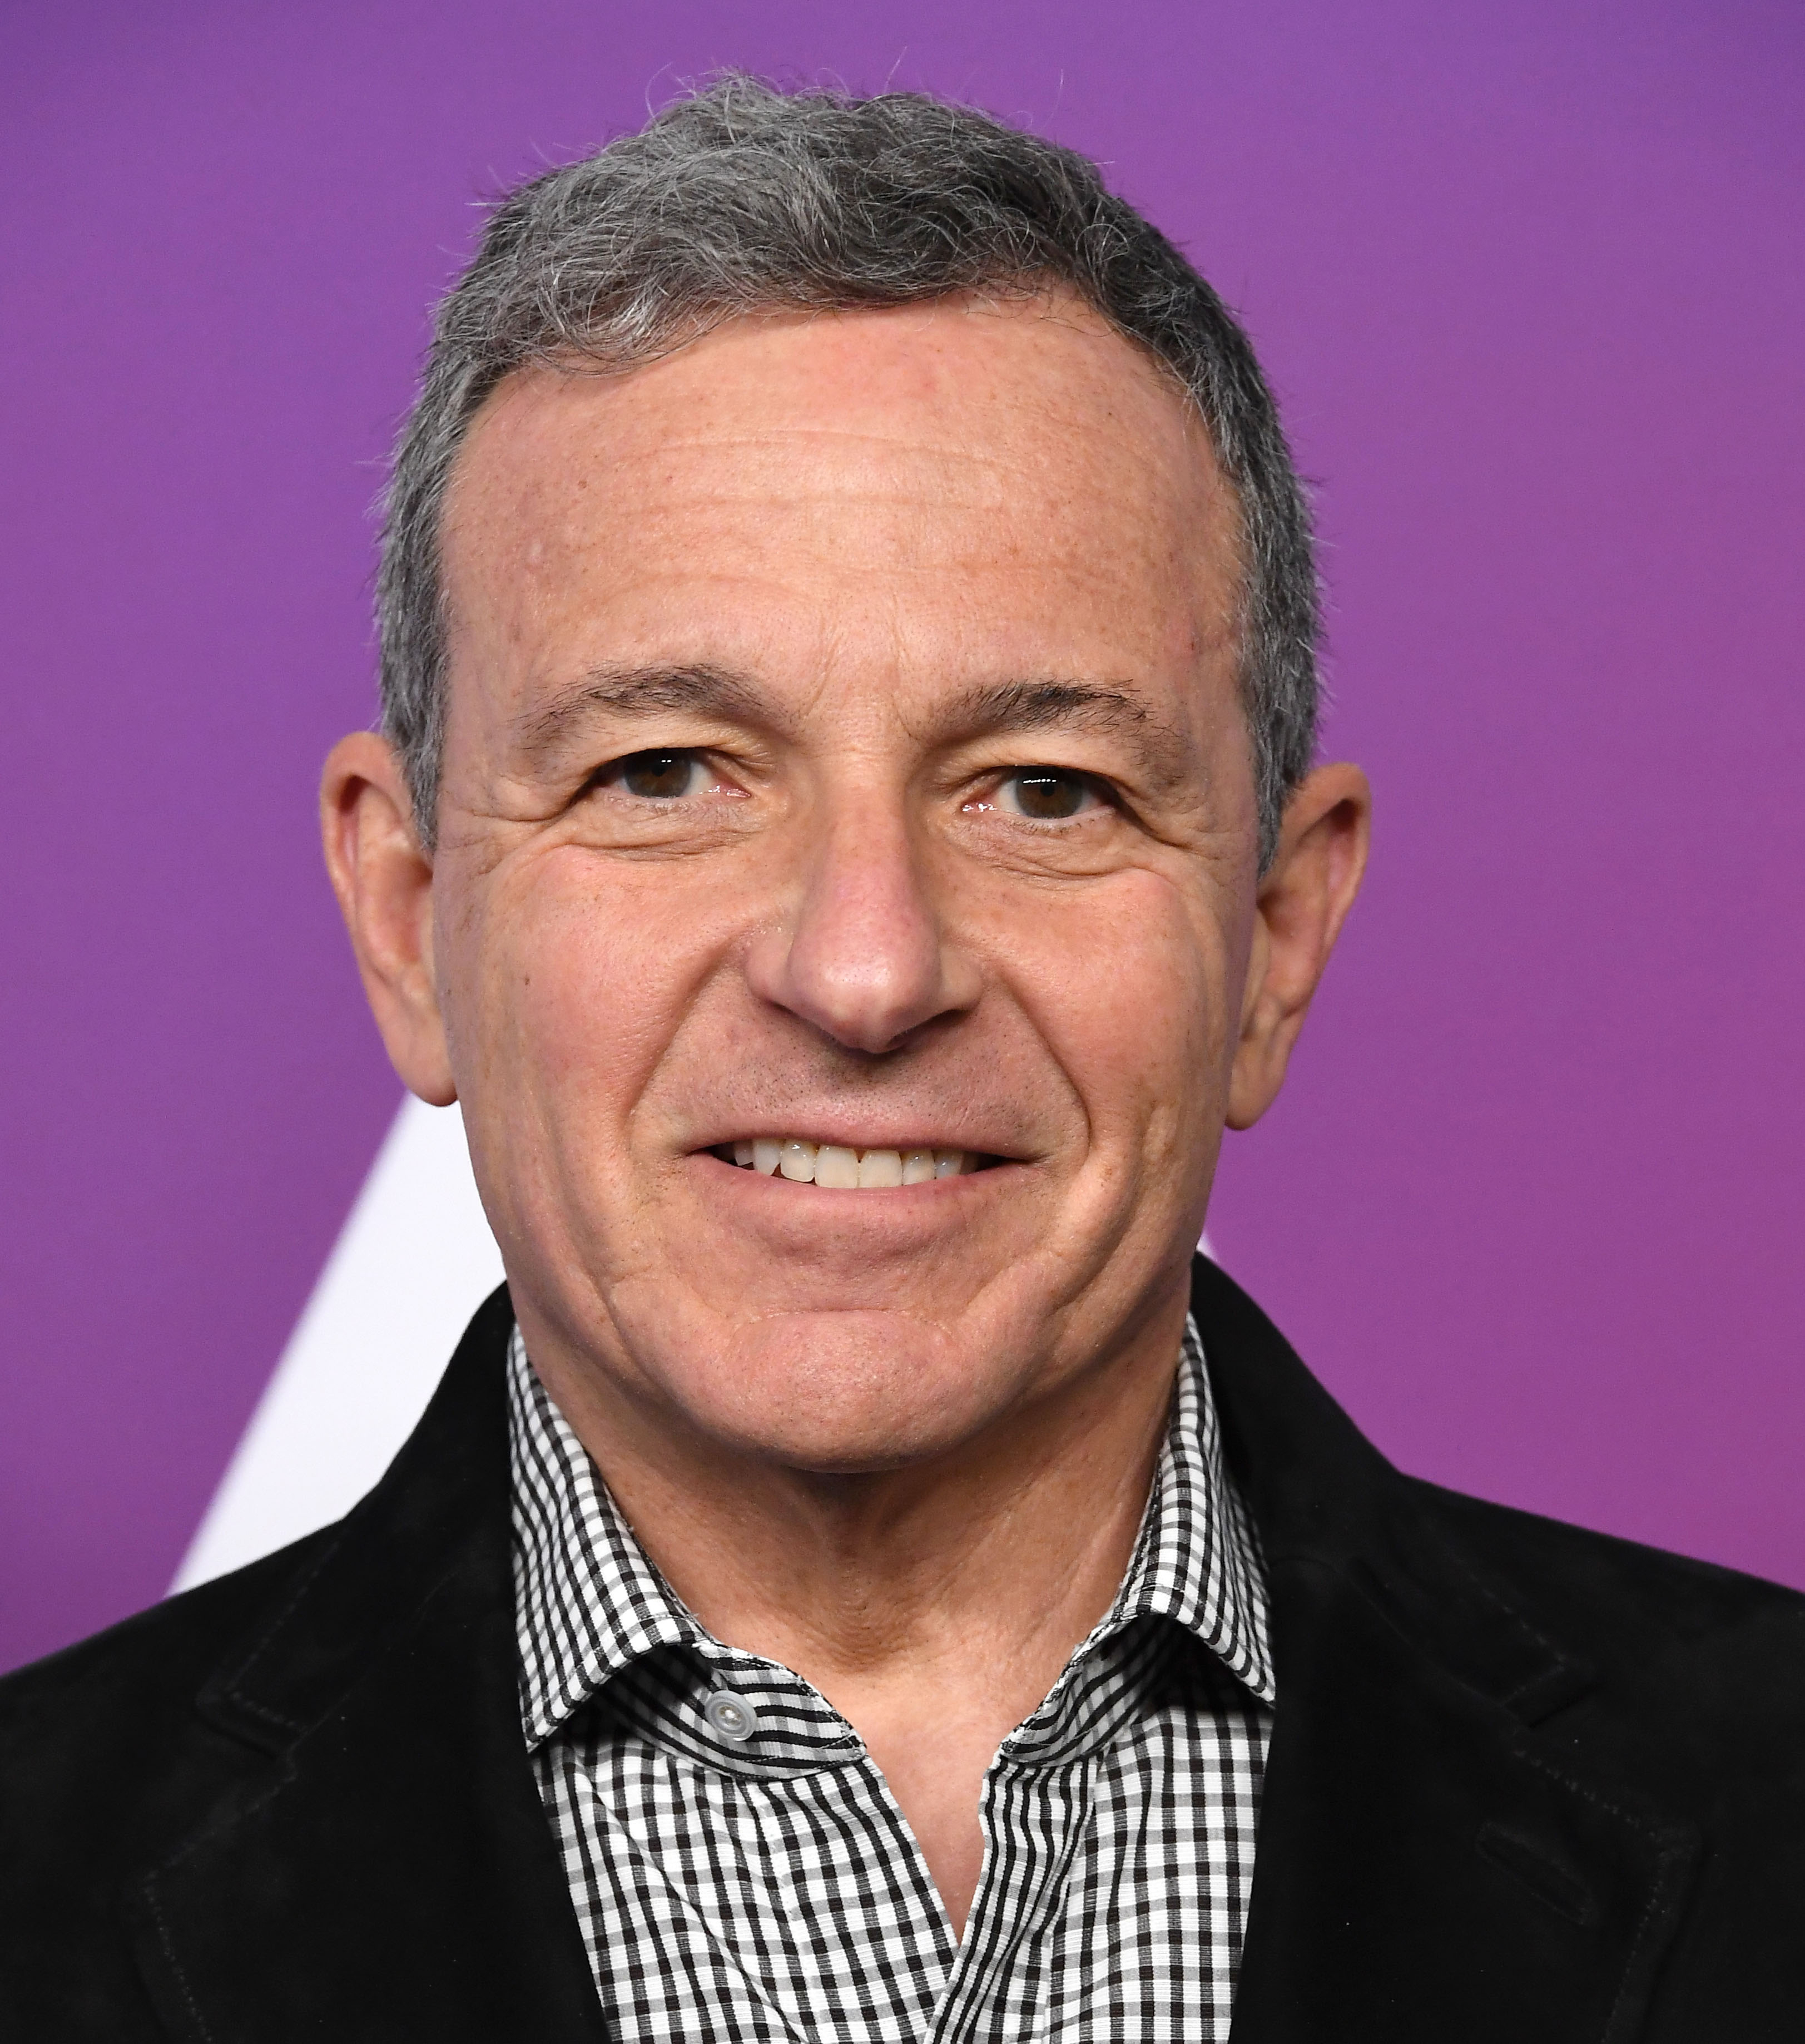 'Hitler would have loved social media,' says Disney chief Bob Iger